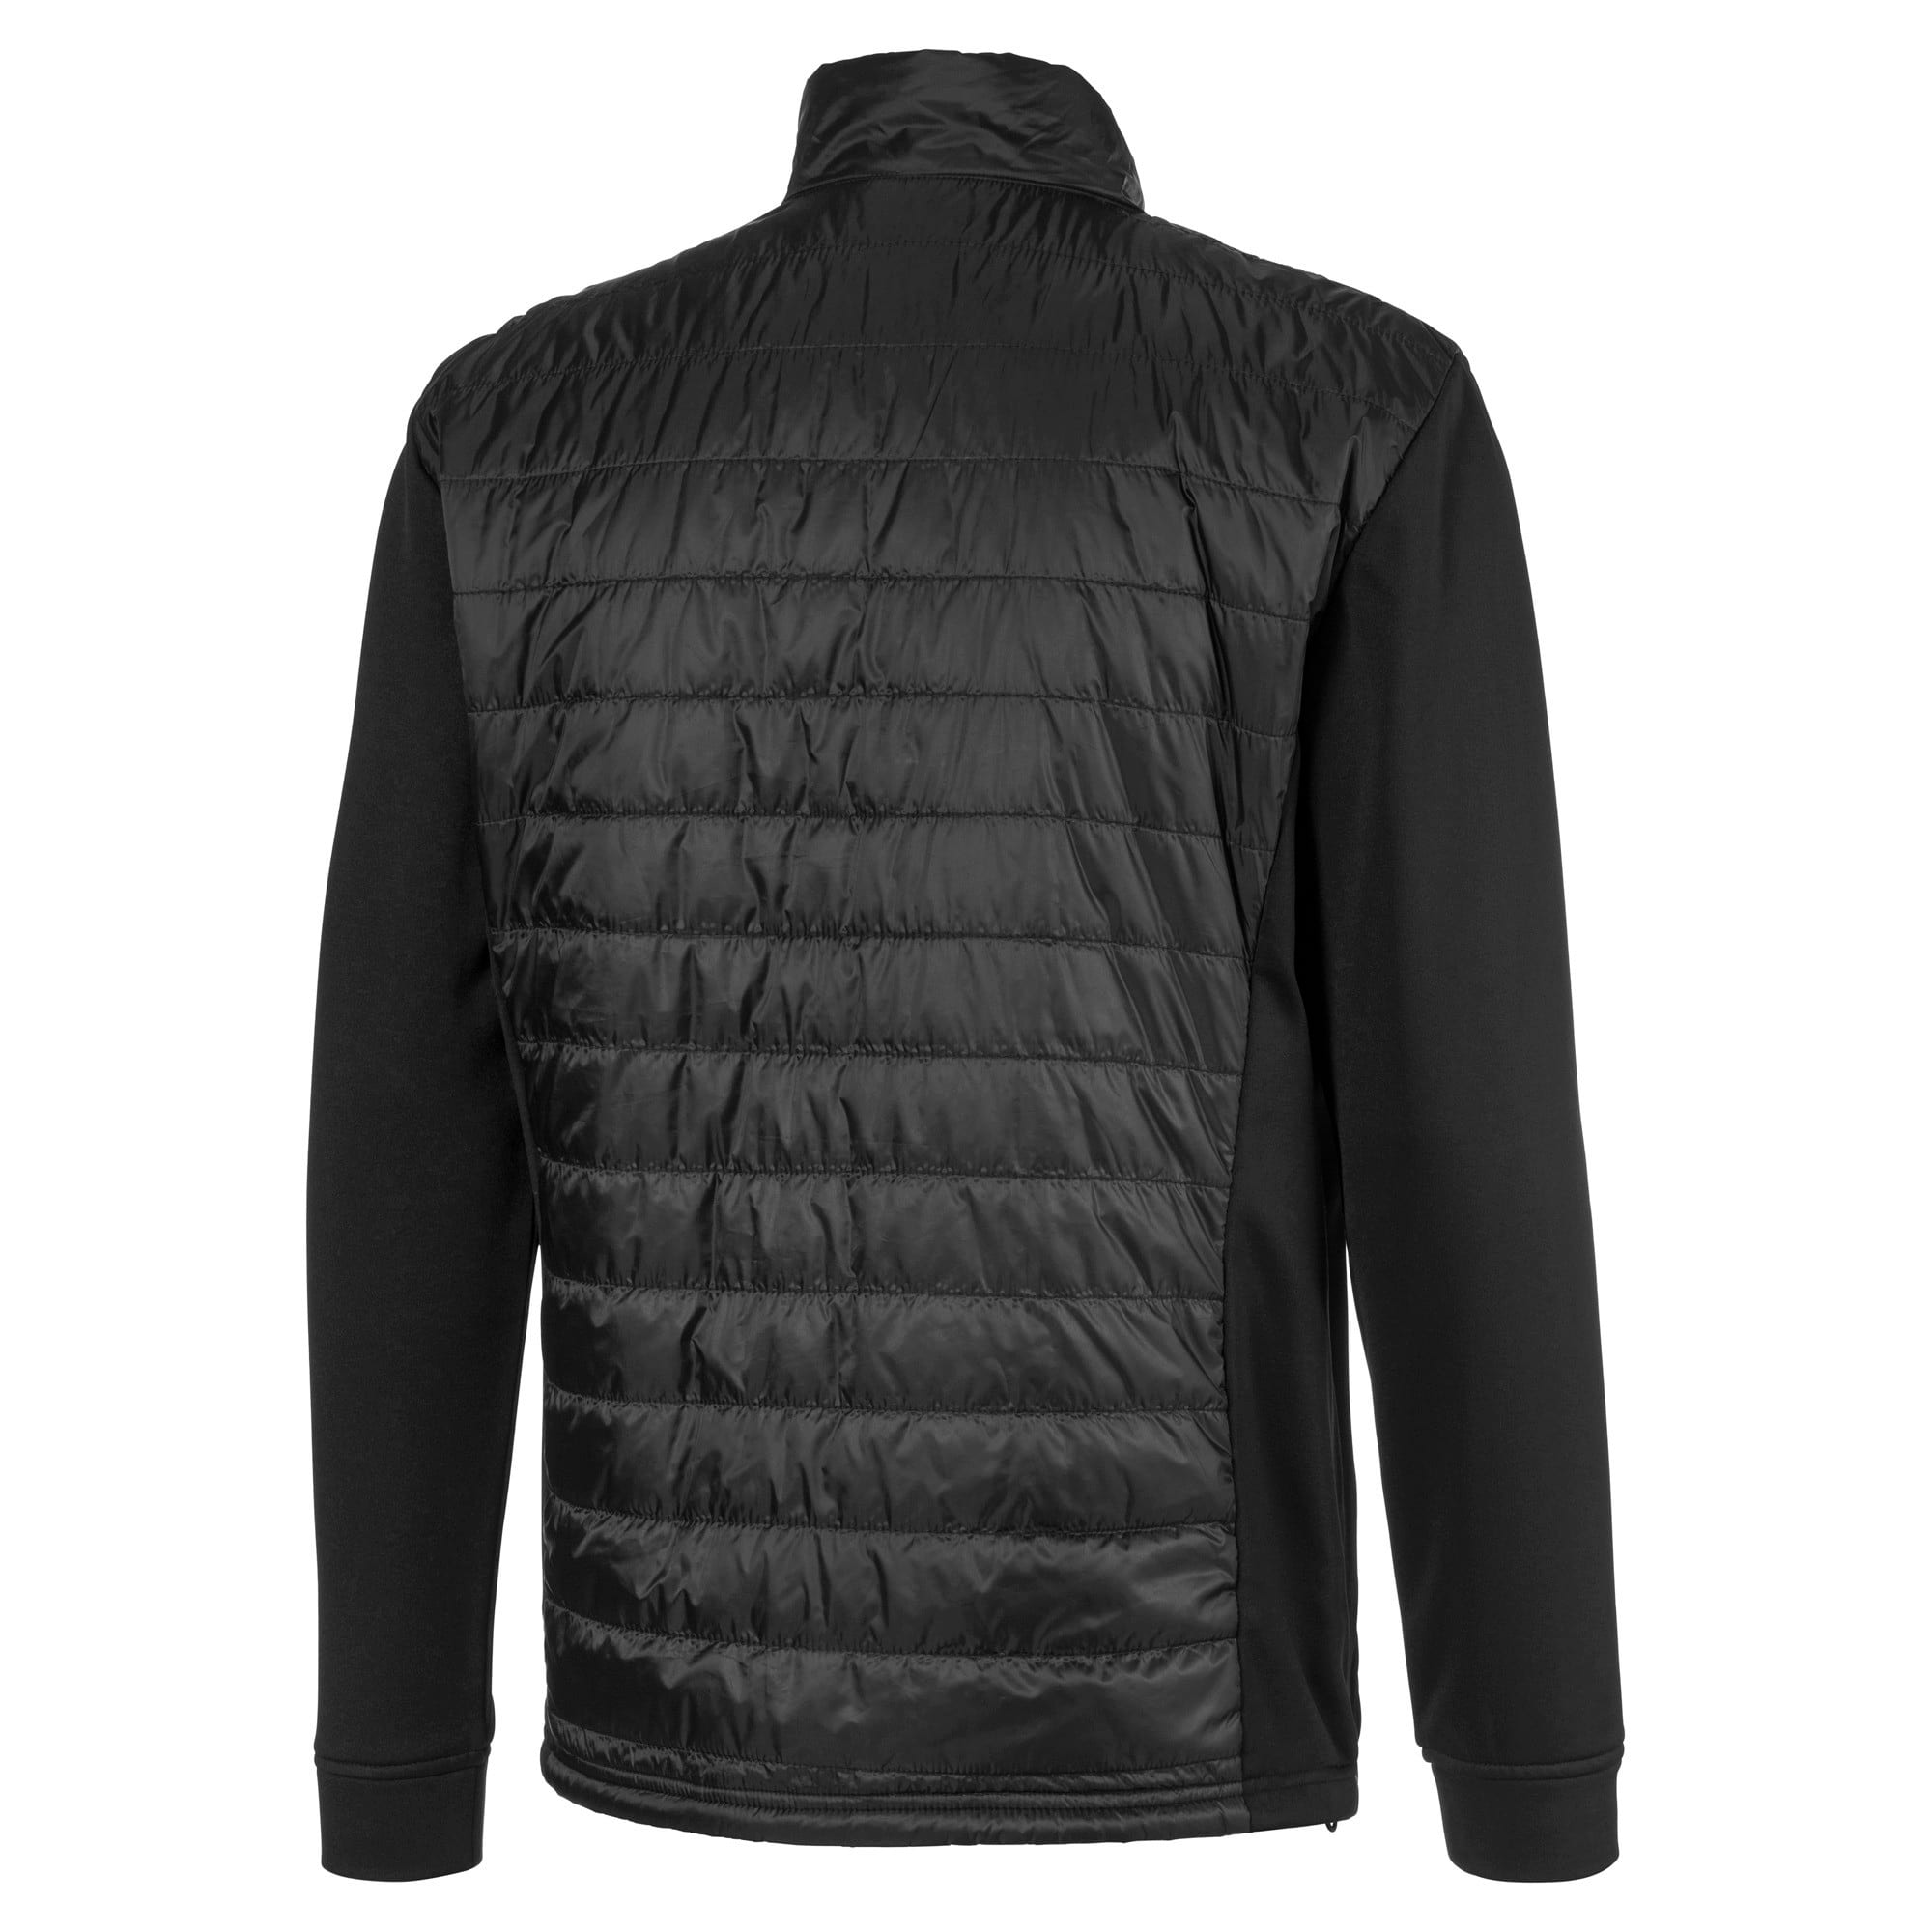 Thumbnail 6 of Gesteppte Primaloft® Herren Golf Jacke, Puma Black, medium